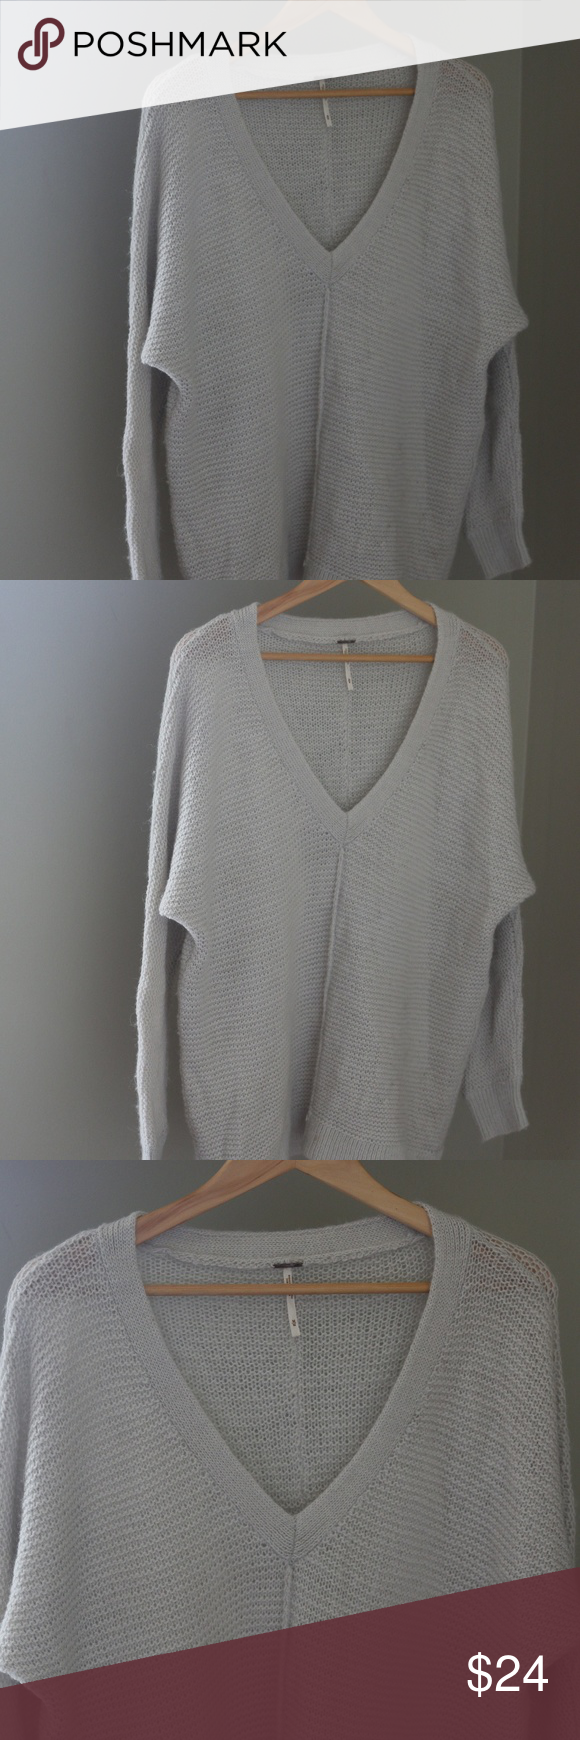 fc091aa64d9d8 Free People Oversized Slouchy Sweater Wool V Neck Free People Women s  Oversized Slouchy Sweater. Size